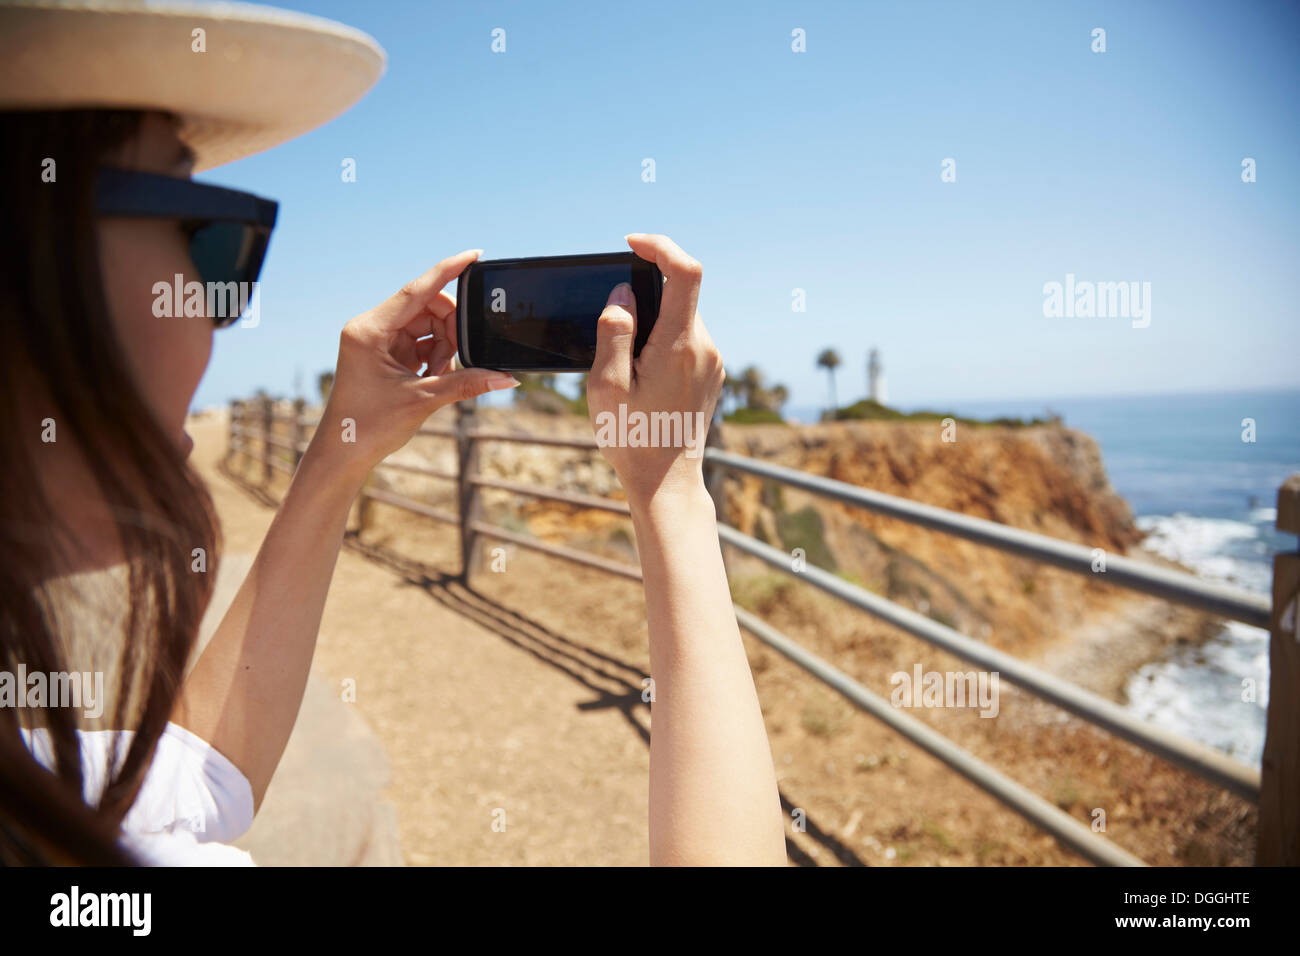 Young woman photographing view, Palos Verdes, California, USA - Stock Image